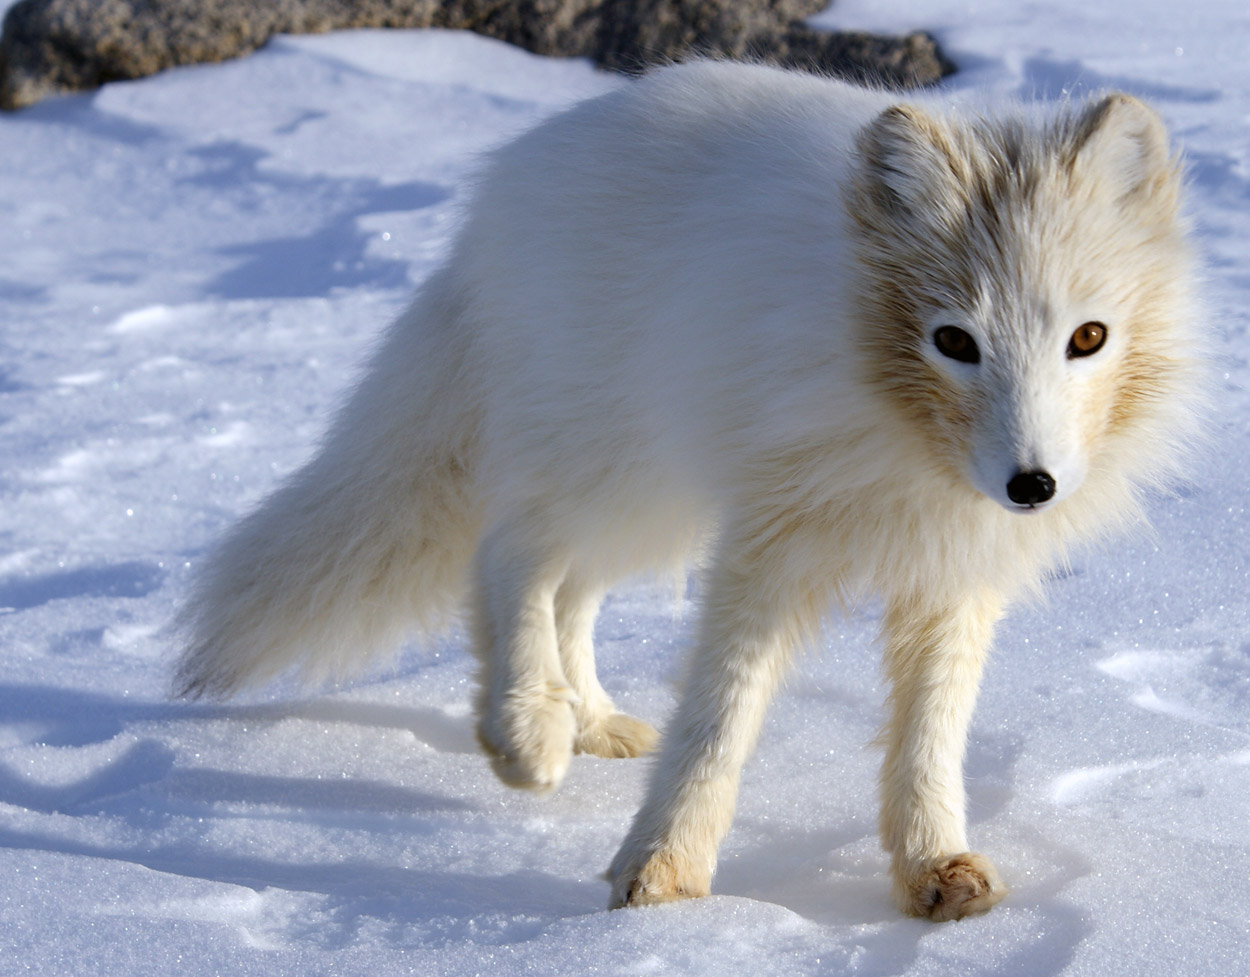 antarctica animals arctic fox polar wildlife facts antarctic foxes name animal adaptations habitat north winter wild cute lagopus environments fauna